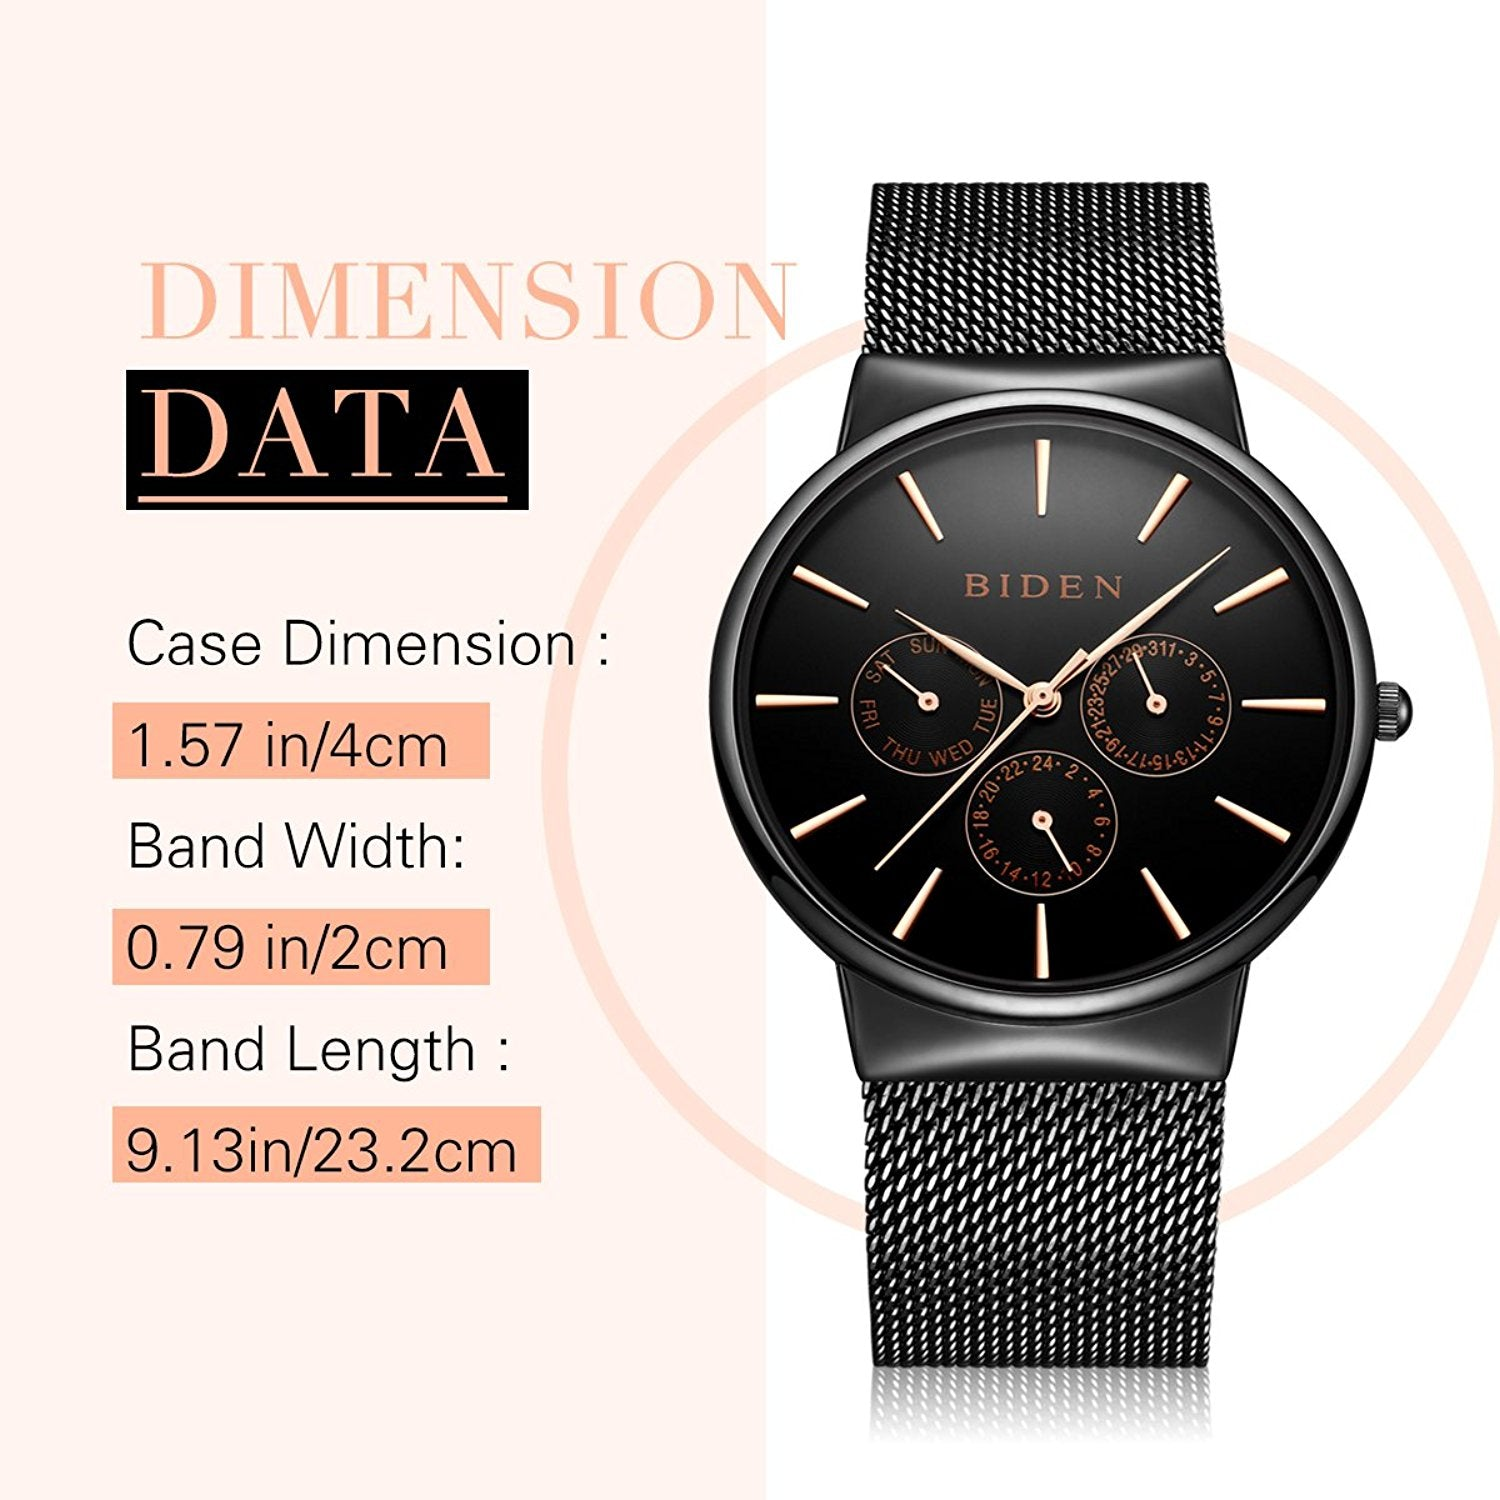 emil mens on strap images fashion best watchesbusiness casualsilver heritage brown men s dayan watches business casual pinterest ambassador